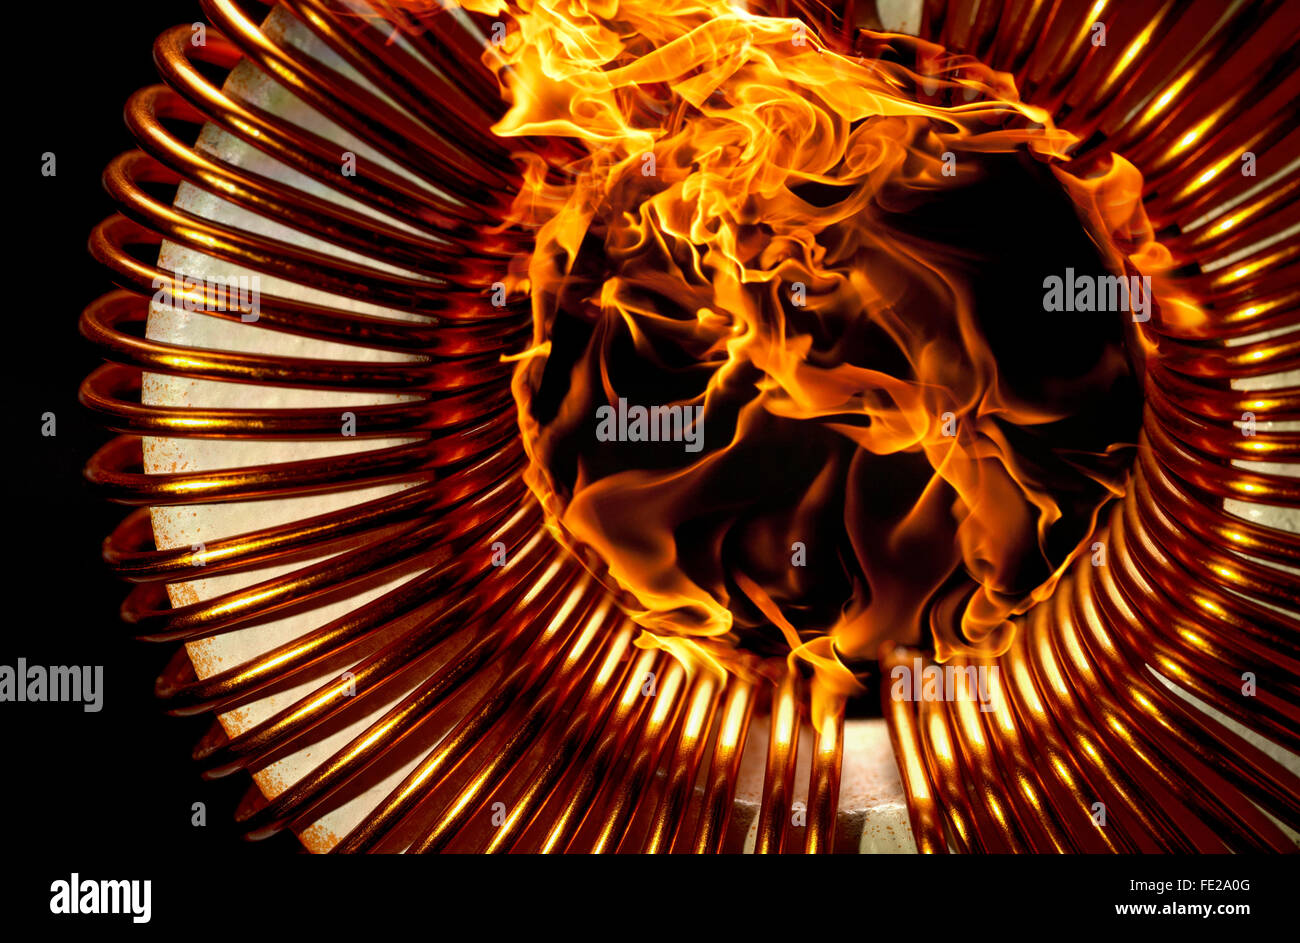 burning inductor coil in black back - Stock Image